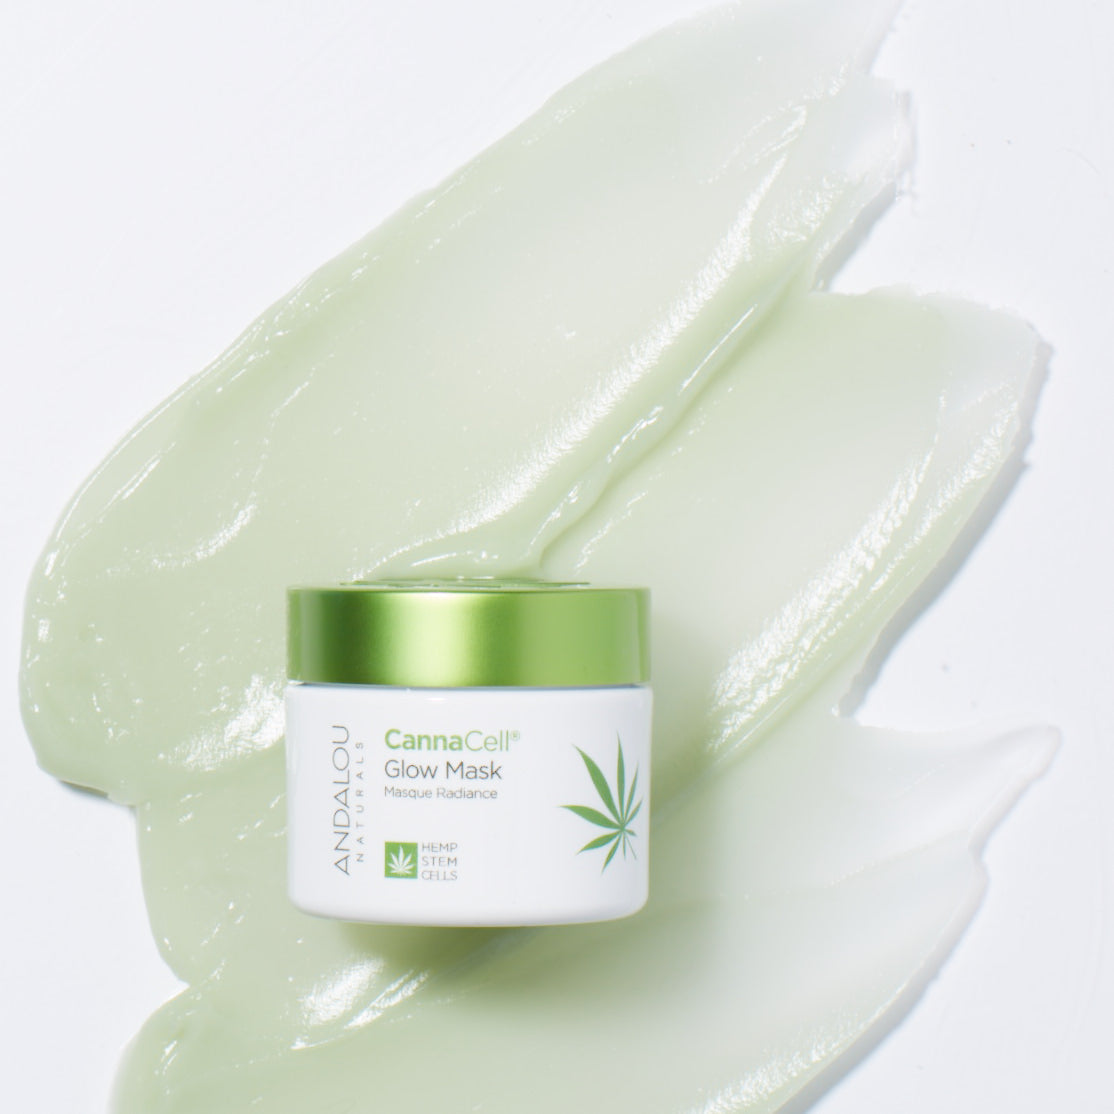 CannaCell Glow Mask